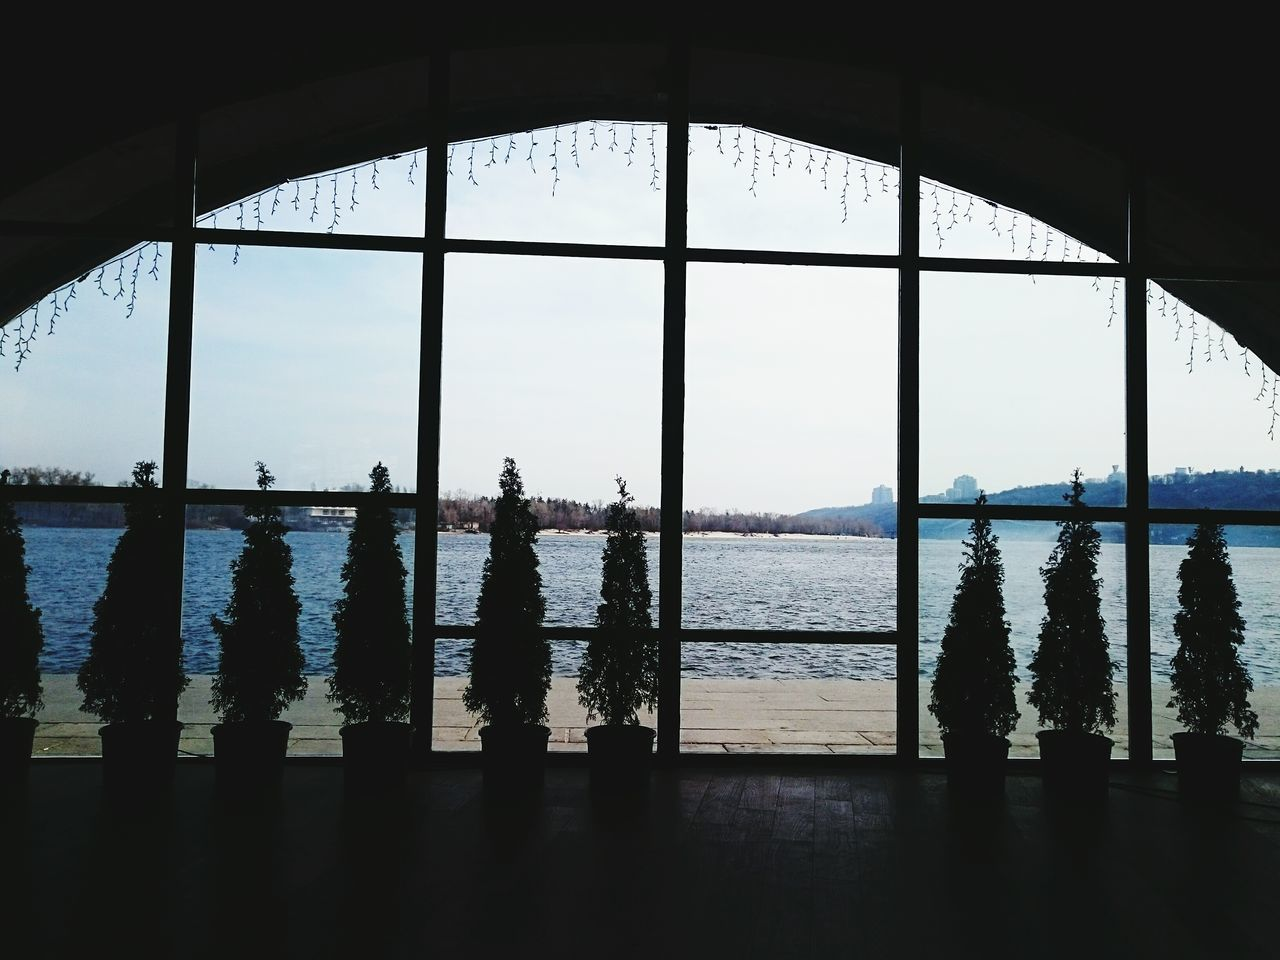 window, water, indoors, sea, day, real people, sky, silhouette, nature, men, standing, tree, architecture, beauty in nature, people